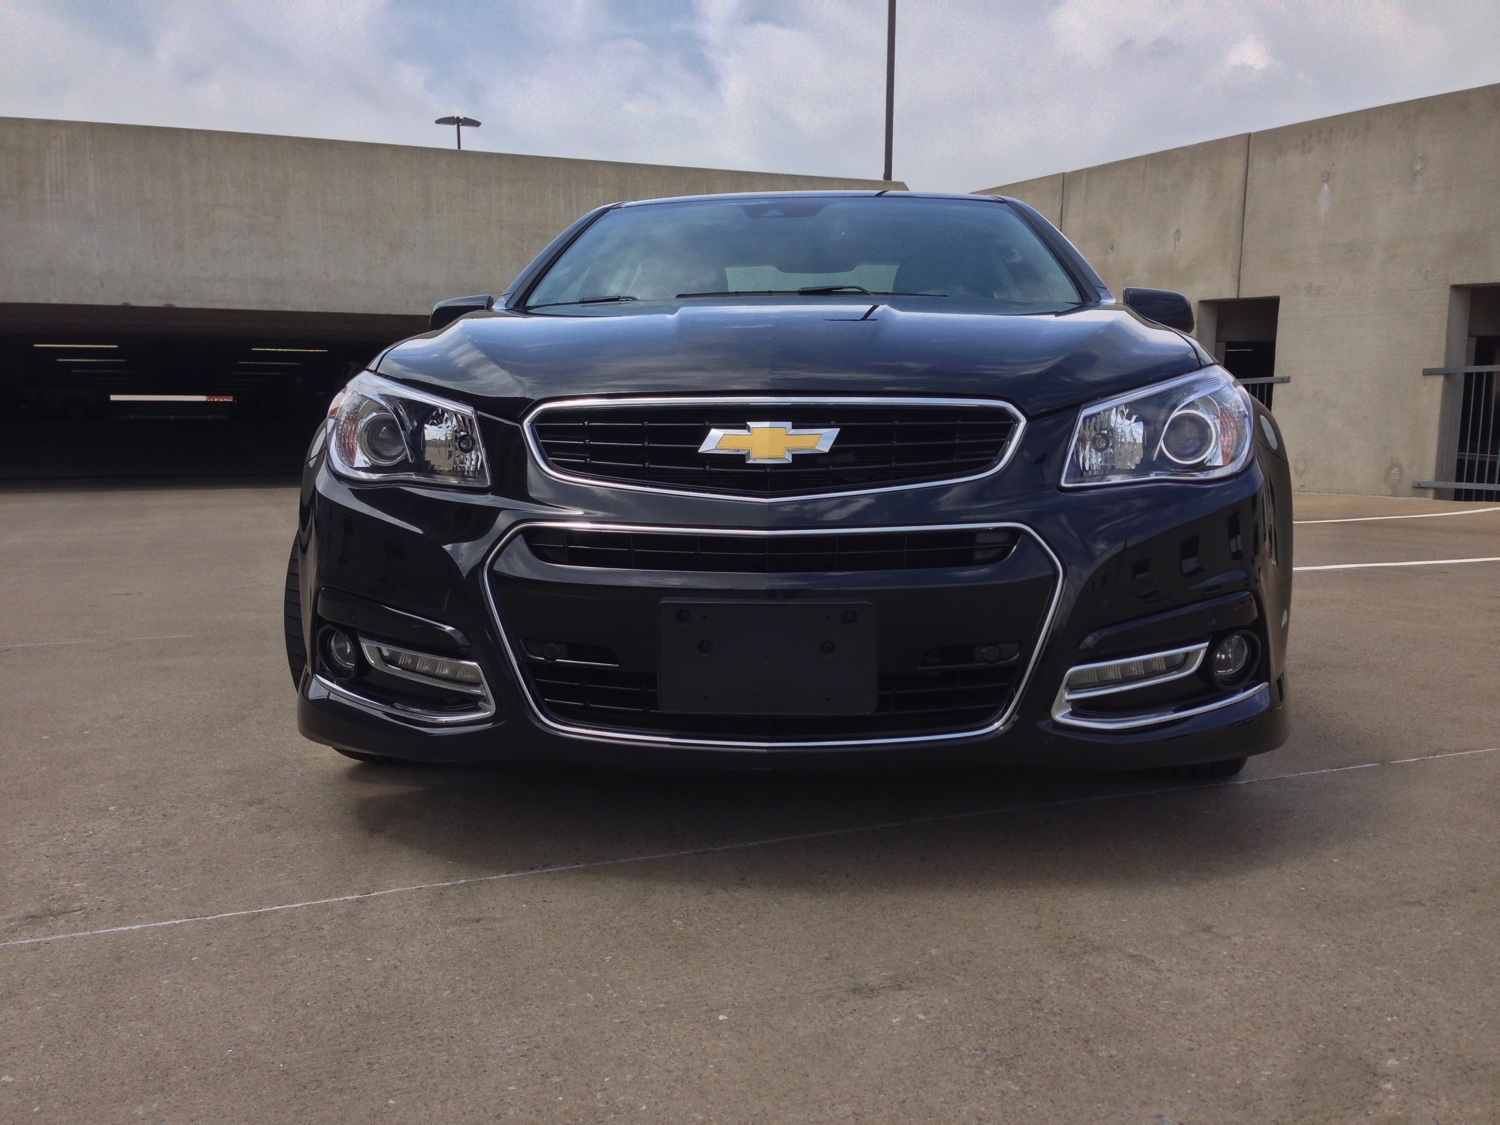 The 2014 Chevrolet SS Sedan by txGarage